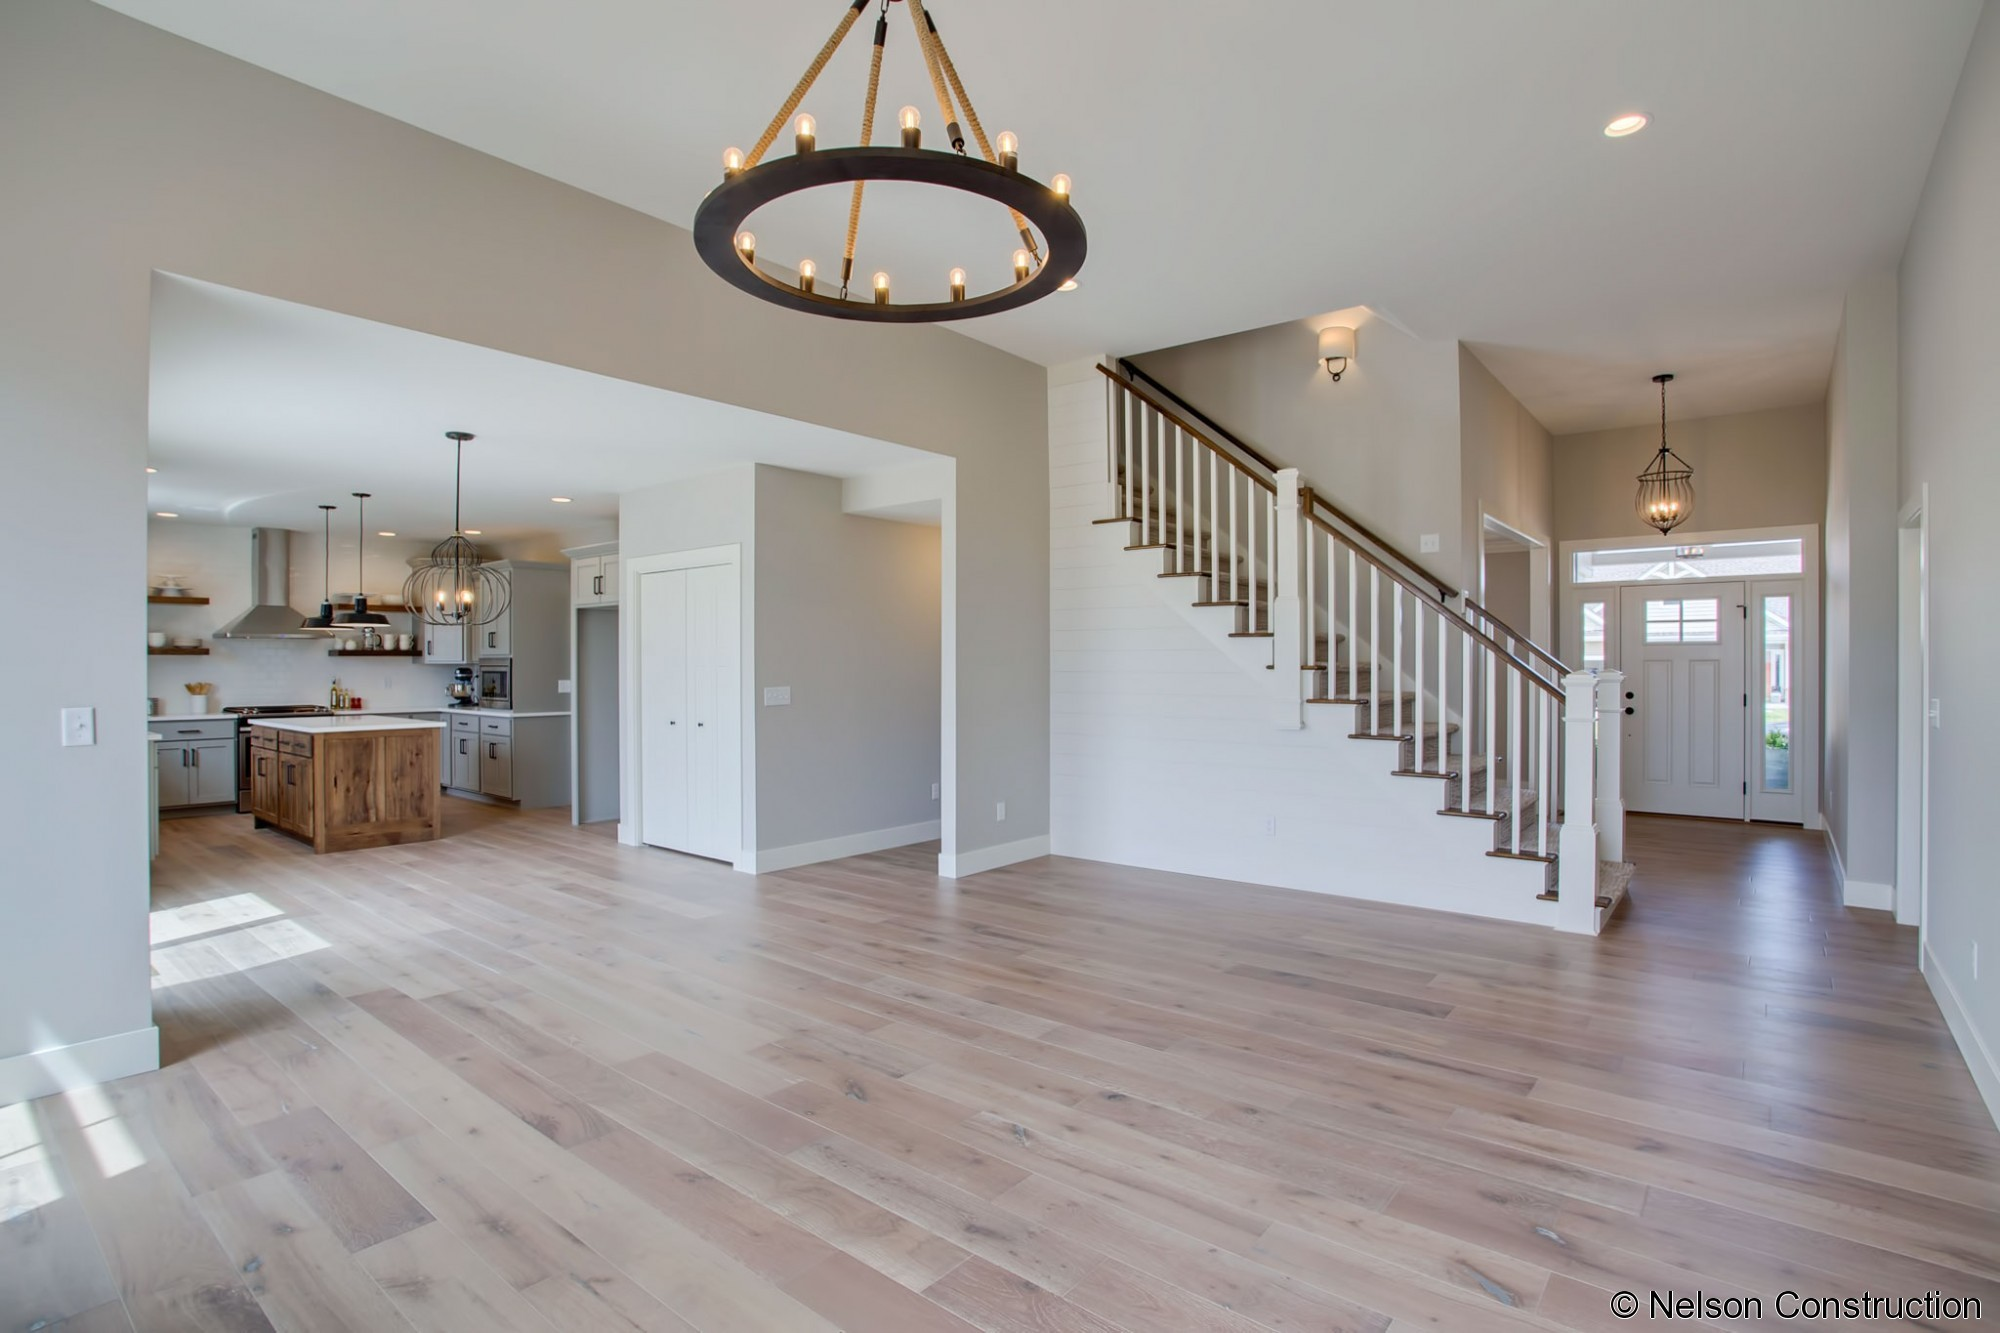 The family room, with its 11 foot ceilings and accent chandelier, opens to both the foyer and kitchen.